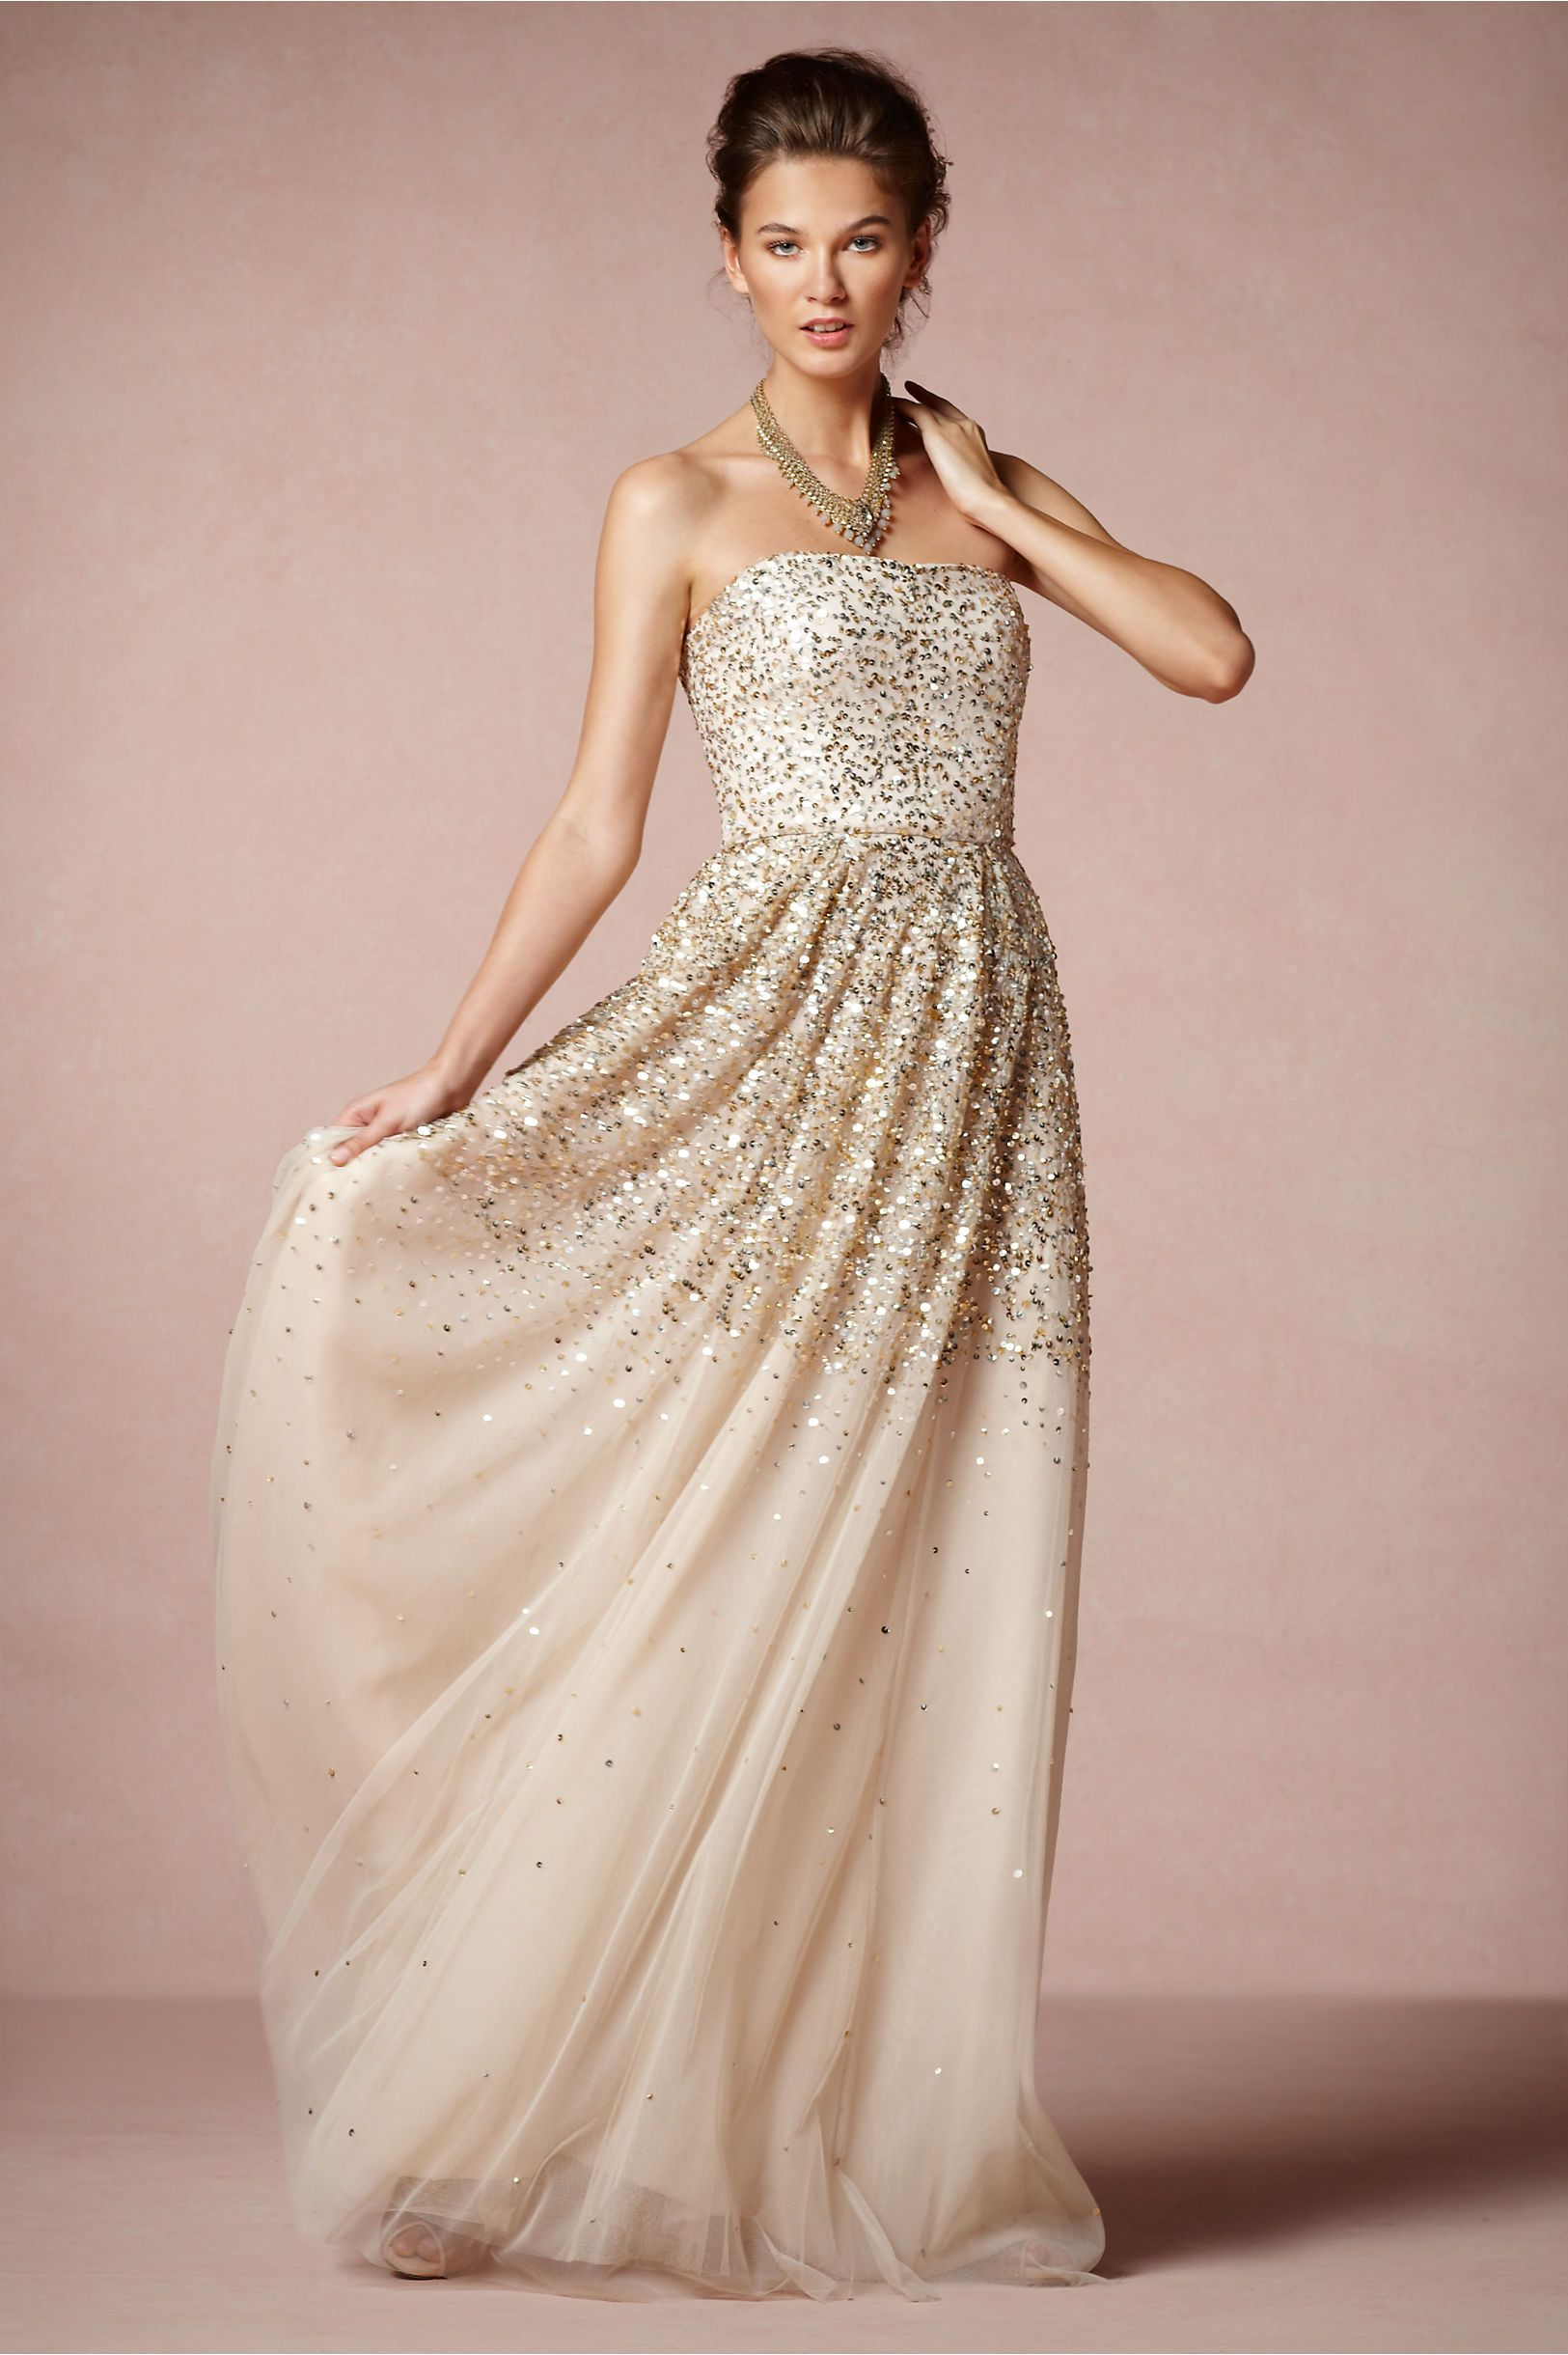 Isadora Gown in New at BHLDN | I Want To Wear That | Pinterest ...